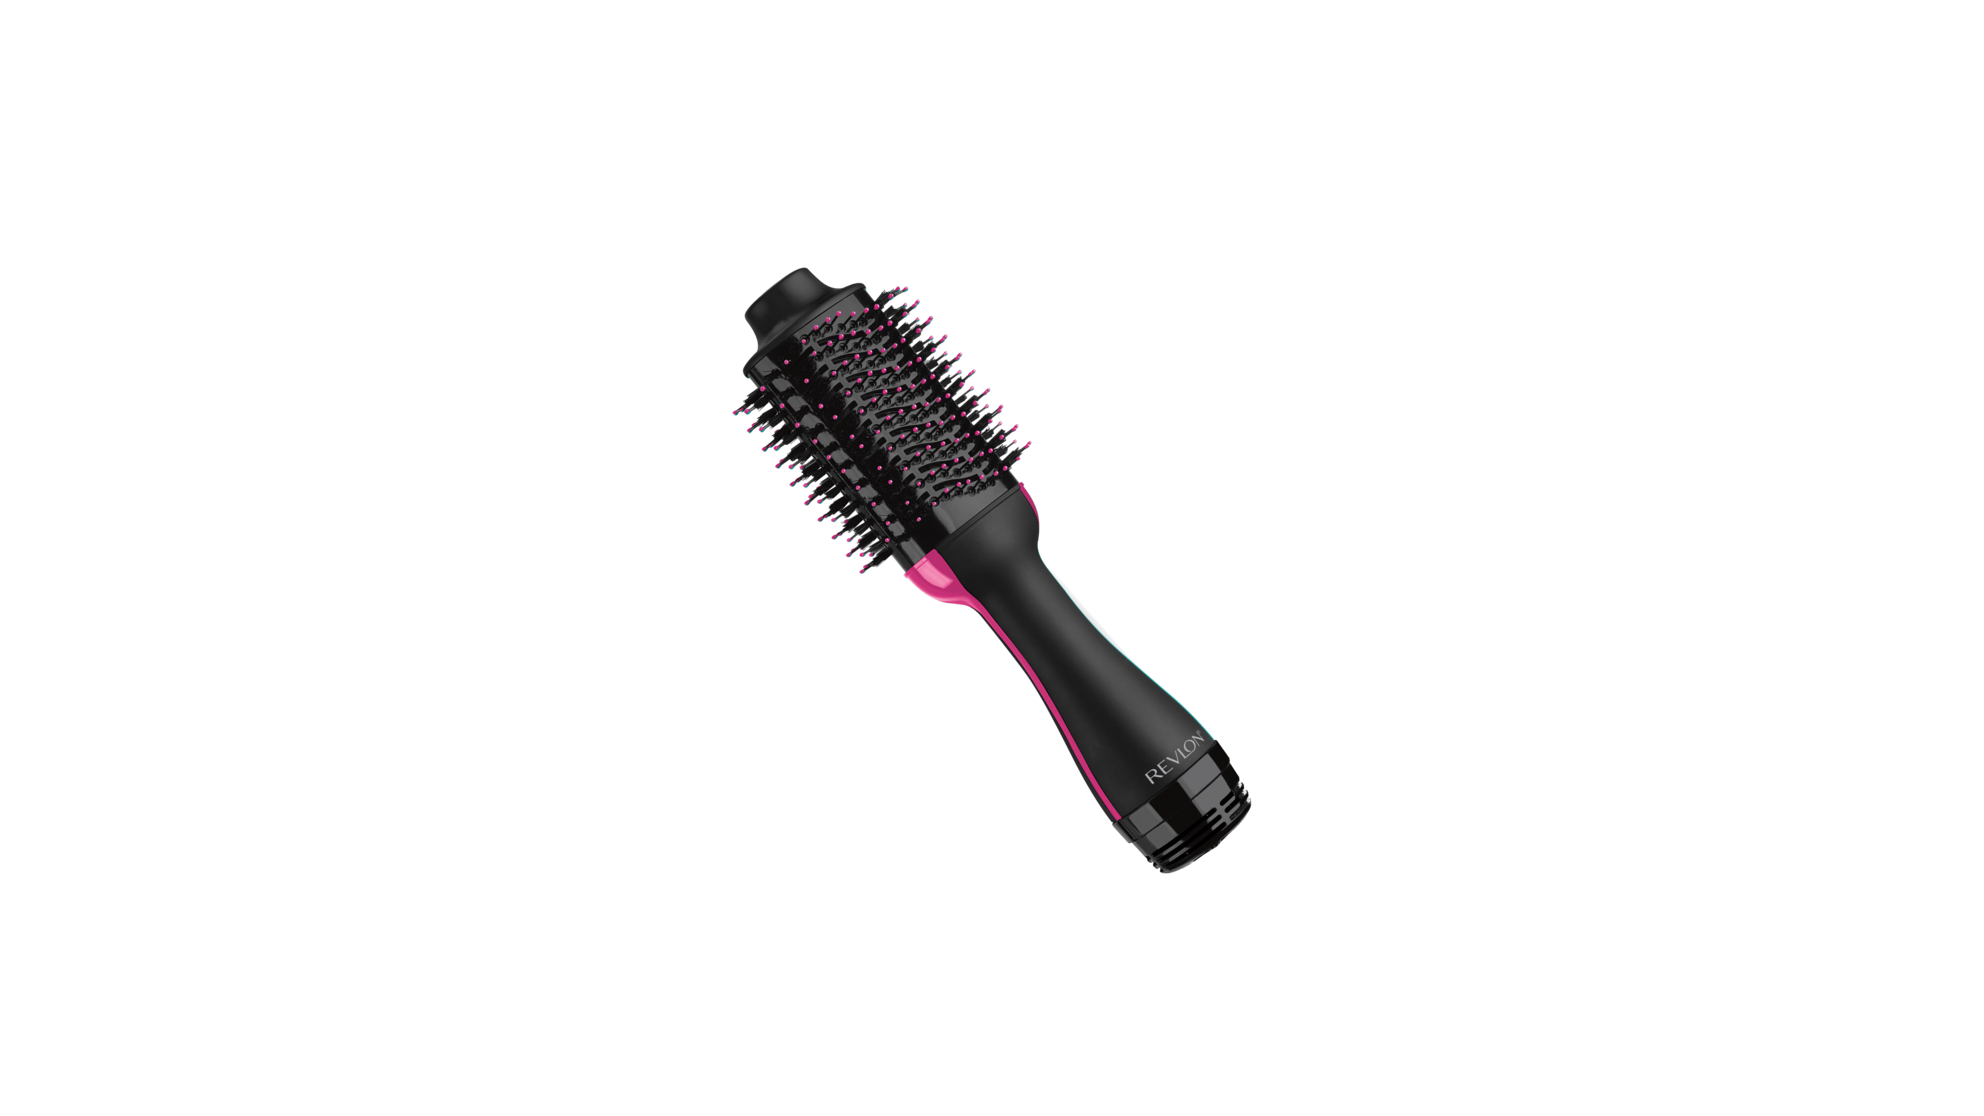 revlon-brush-waves  revlon-one-step-bursh brush hair dryer hair curls waves woman